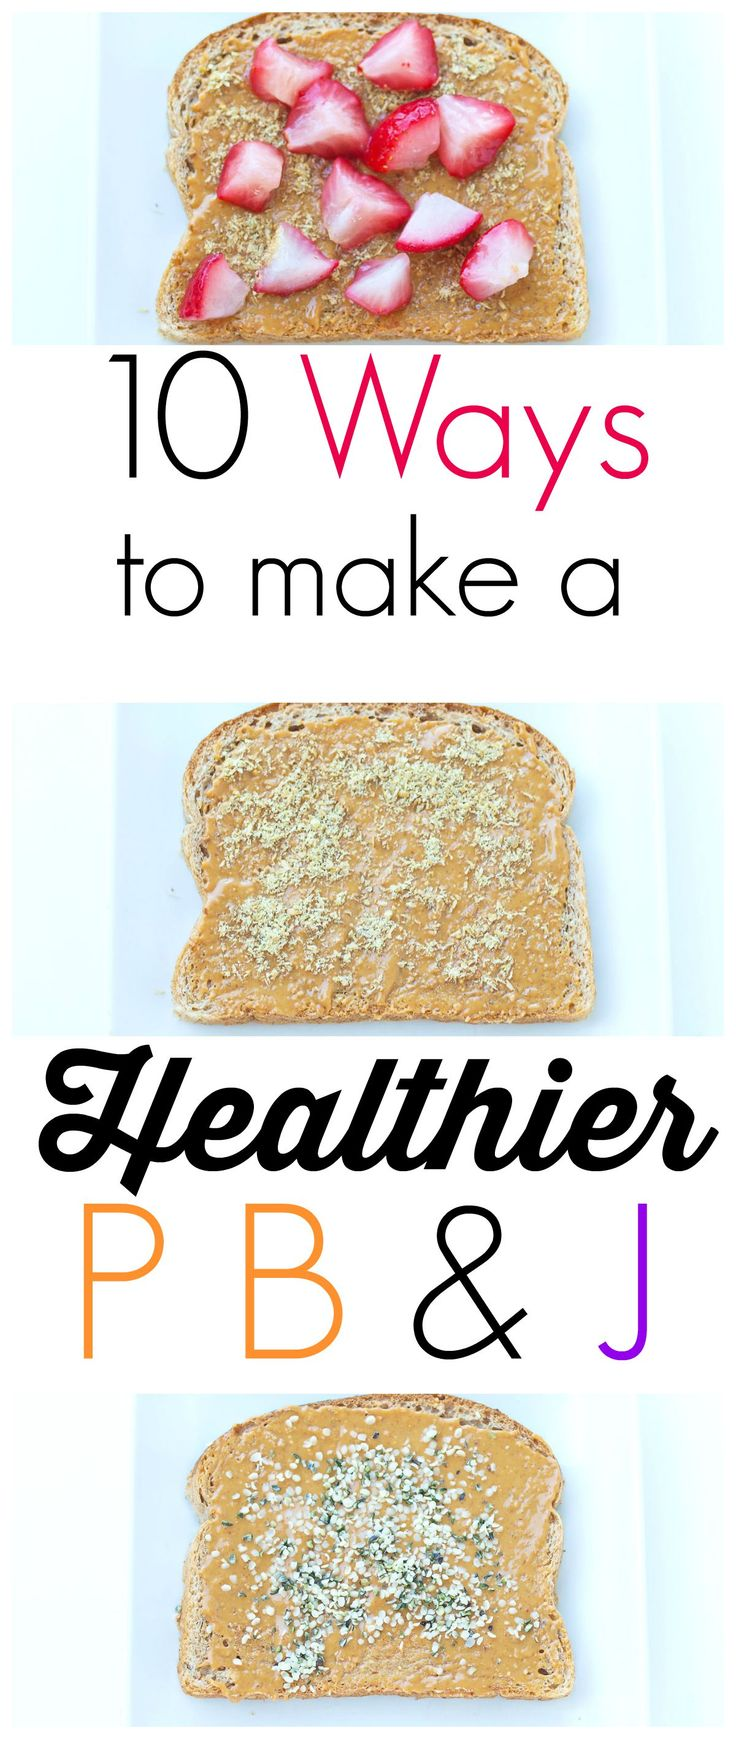 10 Ways to Make Your Peanut Butter and Jelly Sandwich Healthier!  If your children love PB&J, find out how you can make it the healthiest sandwich ever! Great to read as you plan your back to school lunch ideas.  Make this classic sandwich as healthy as you can with these great tips.